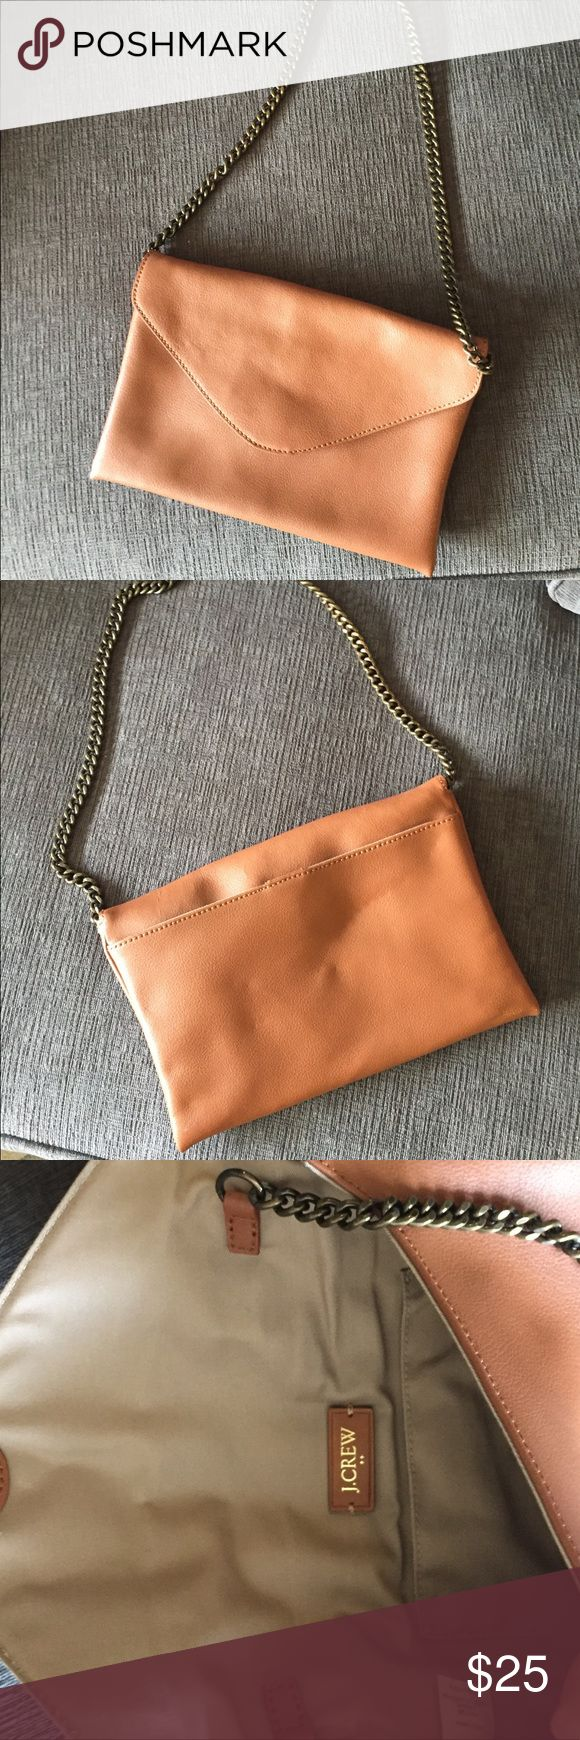 J Crew Factory camel clutch Brand new, never worn. Easy camel clutch that you can throw on your shoulder. Big enough to fit wallet and other items. 7 inches length, 10 inches width. Straps are not removable. J. Crew Factory Bags Clutches & Wristlets